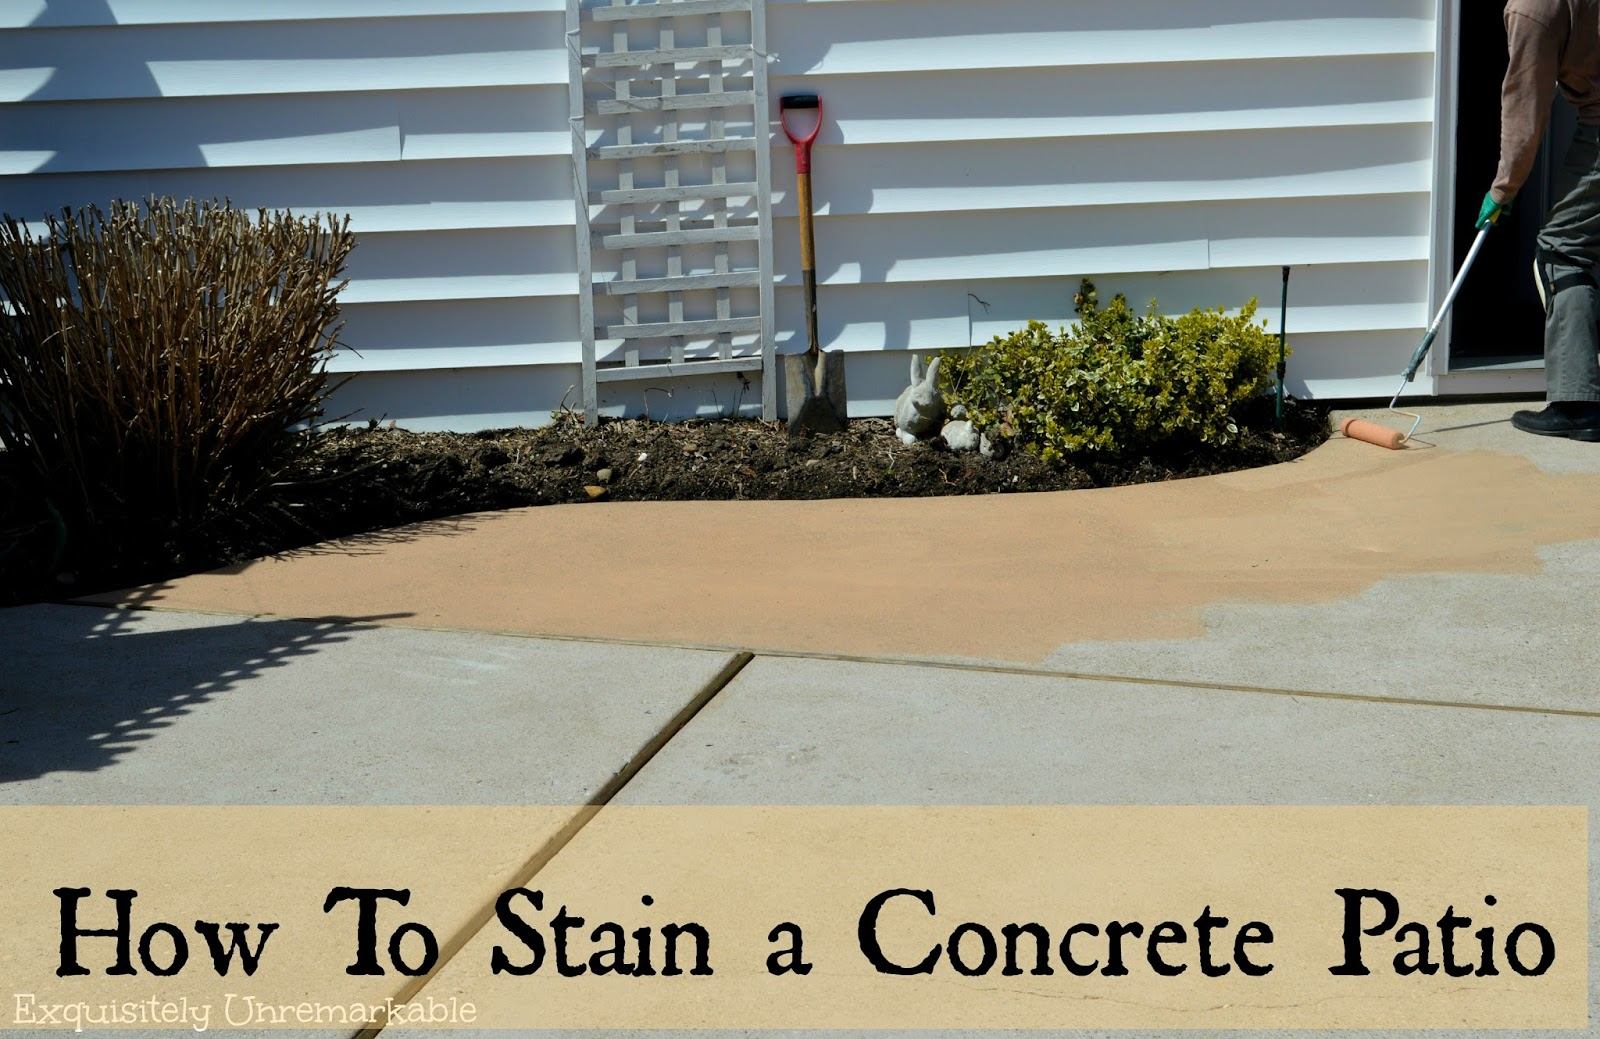 Diy Paint Concrete Patio How To Stain A Concrete Patio Exquisitely Unremarkable